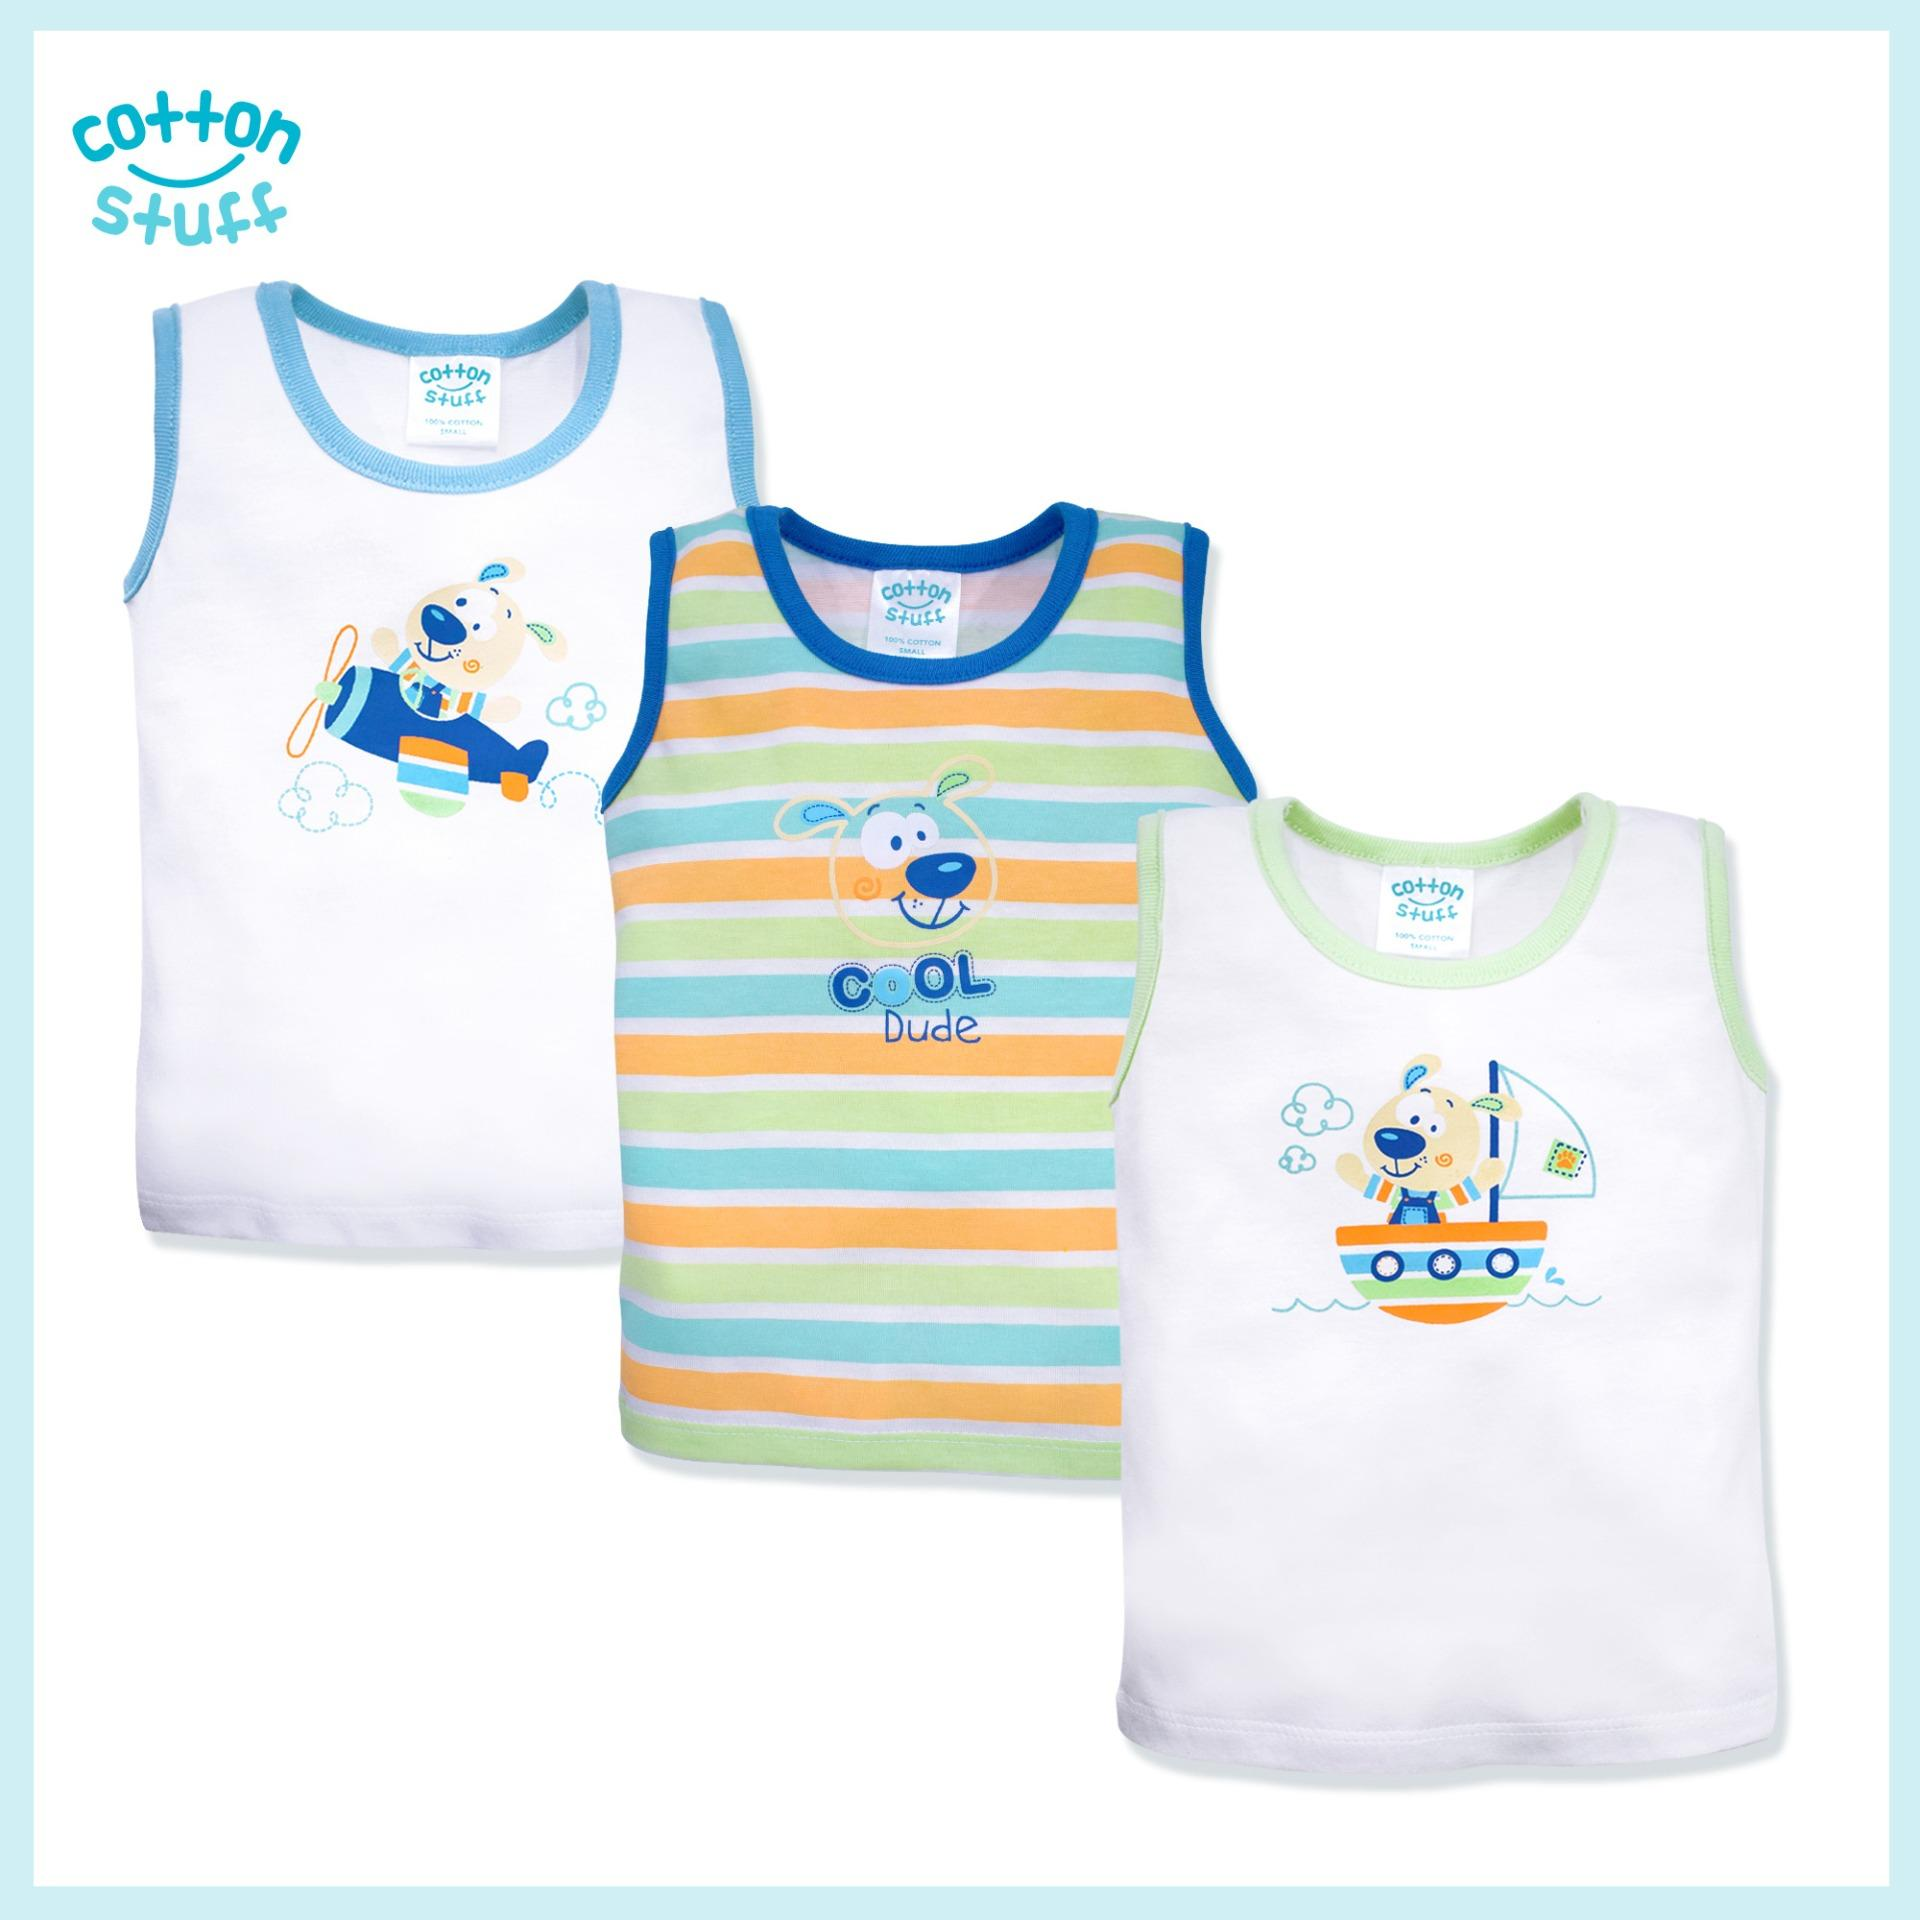 d01945daf Boys Clothing for sale - Baby Clothing for Boys Online Deals ...